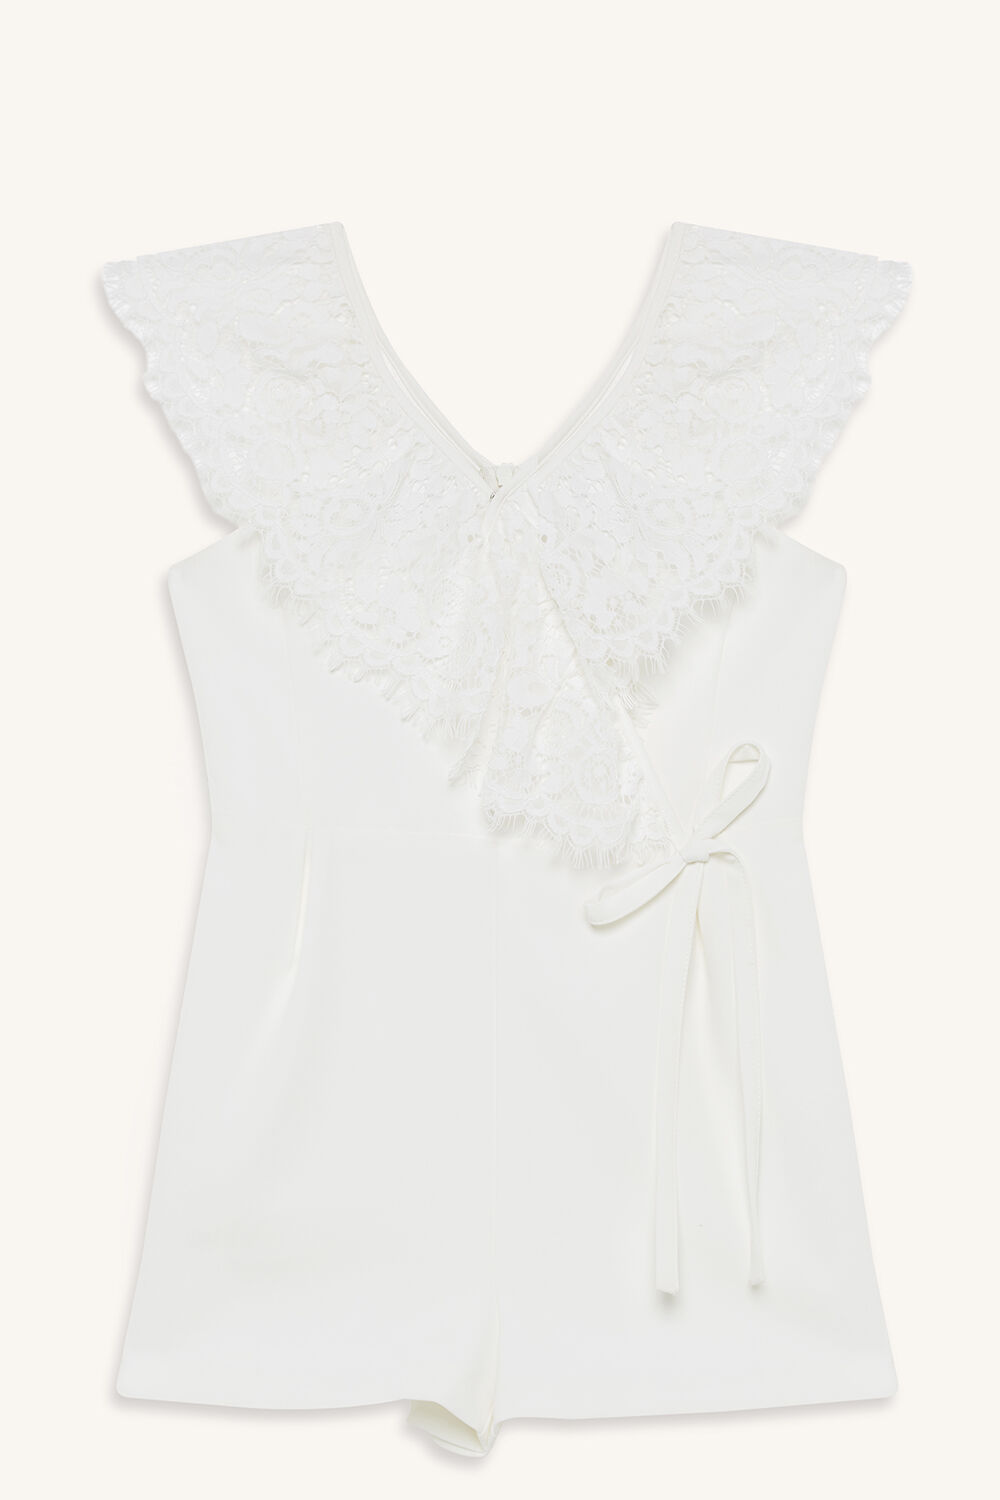 PENELOPE PLAYSUIT in colour CLOUD DANCER